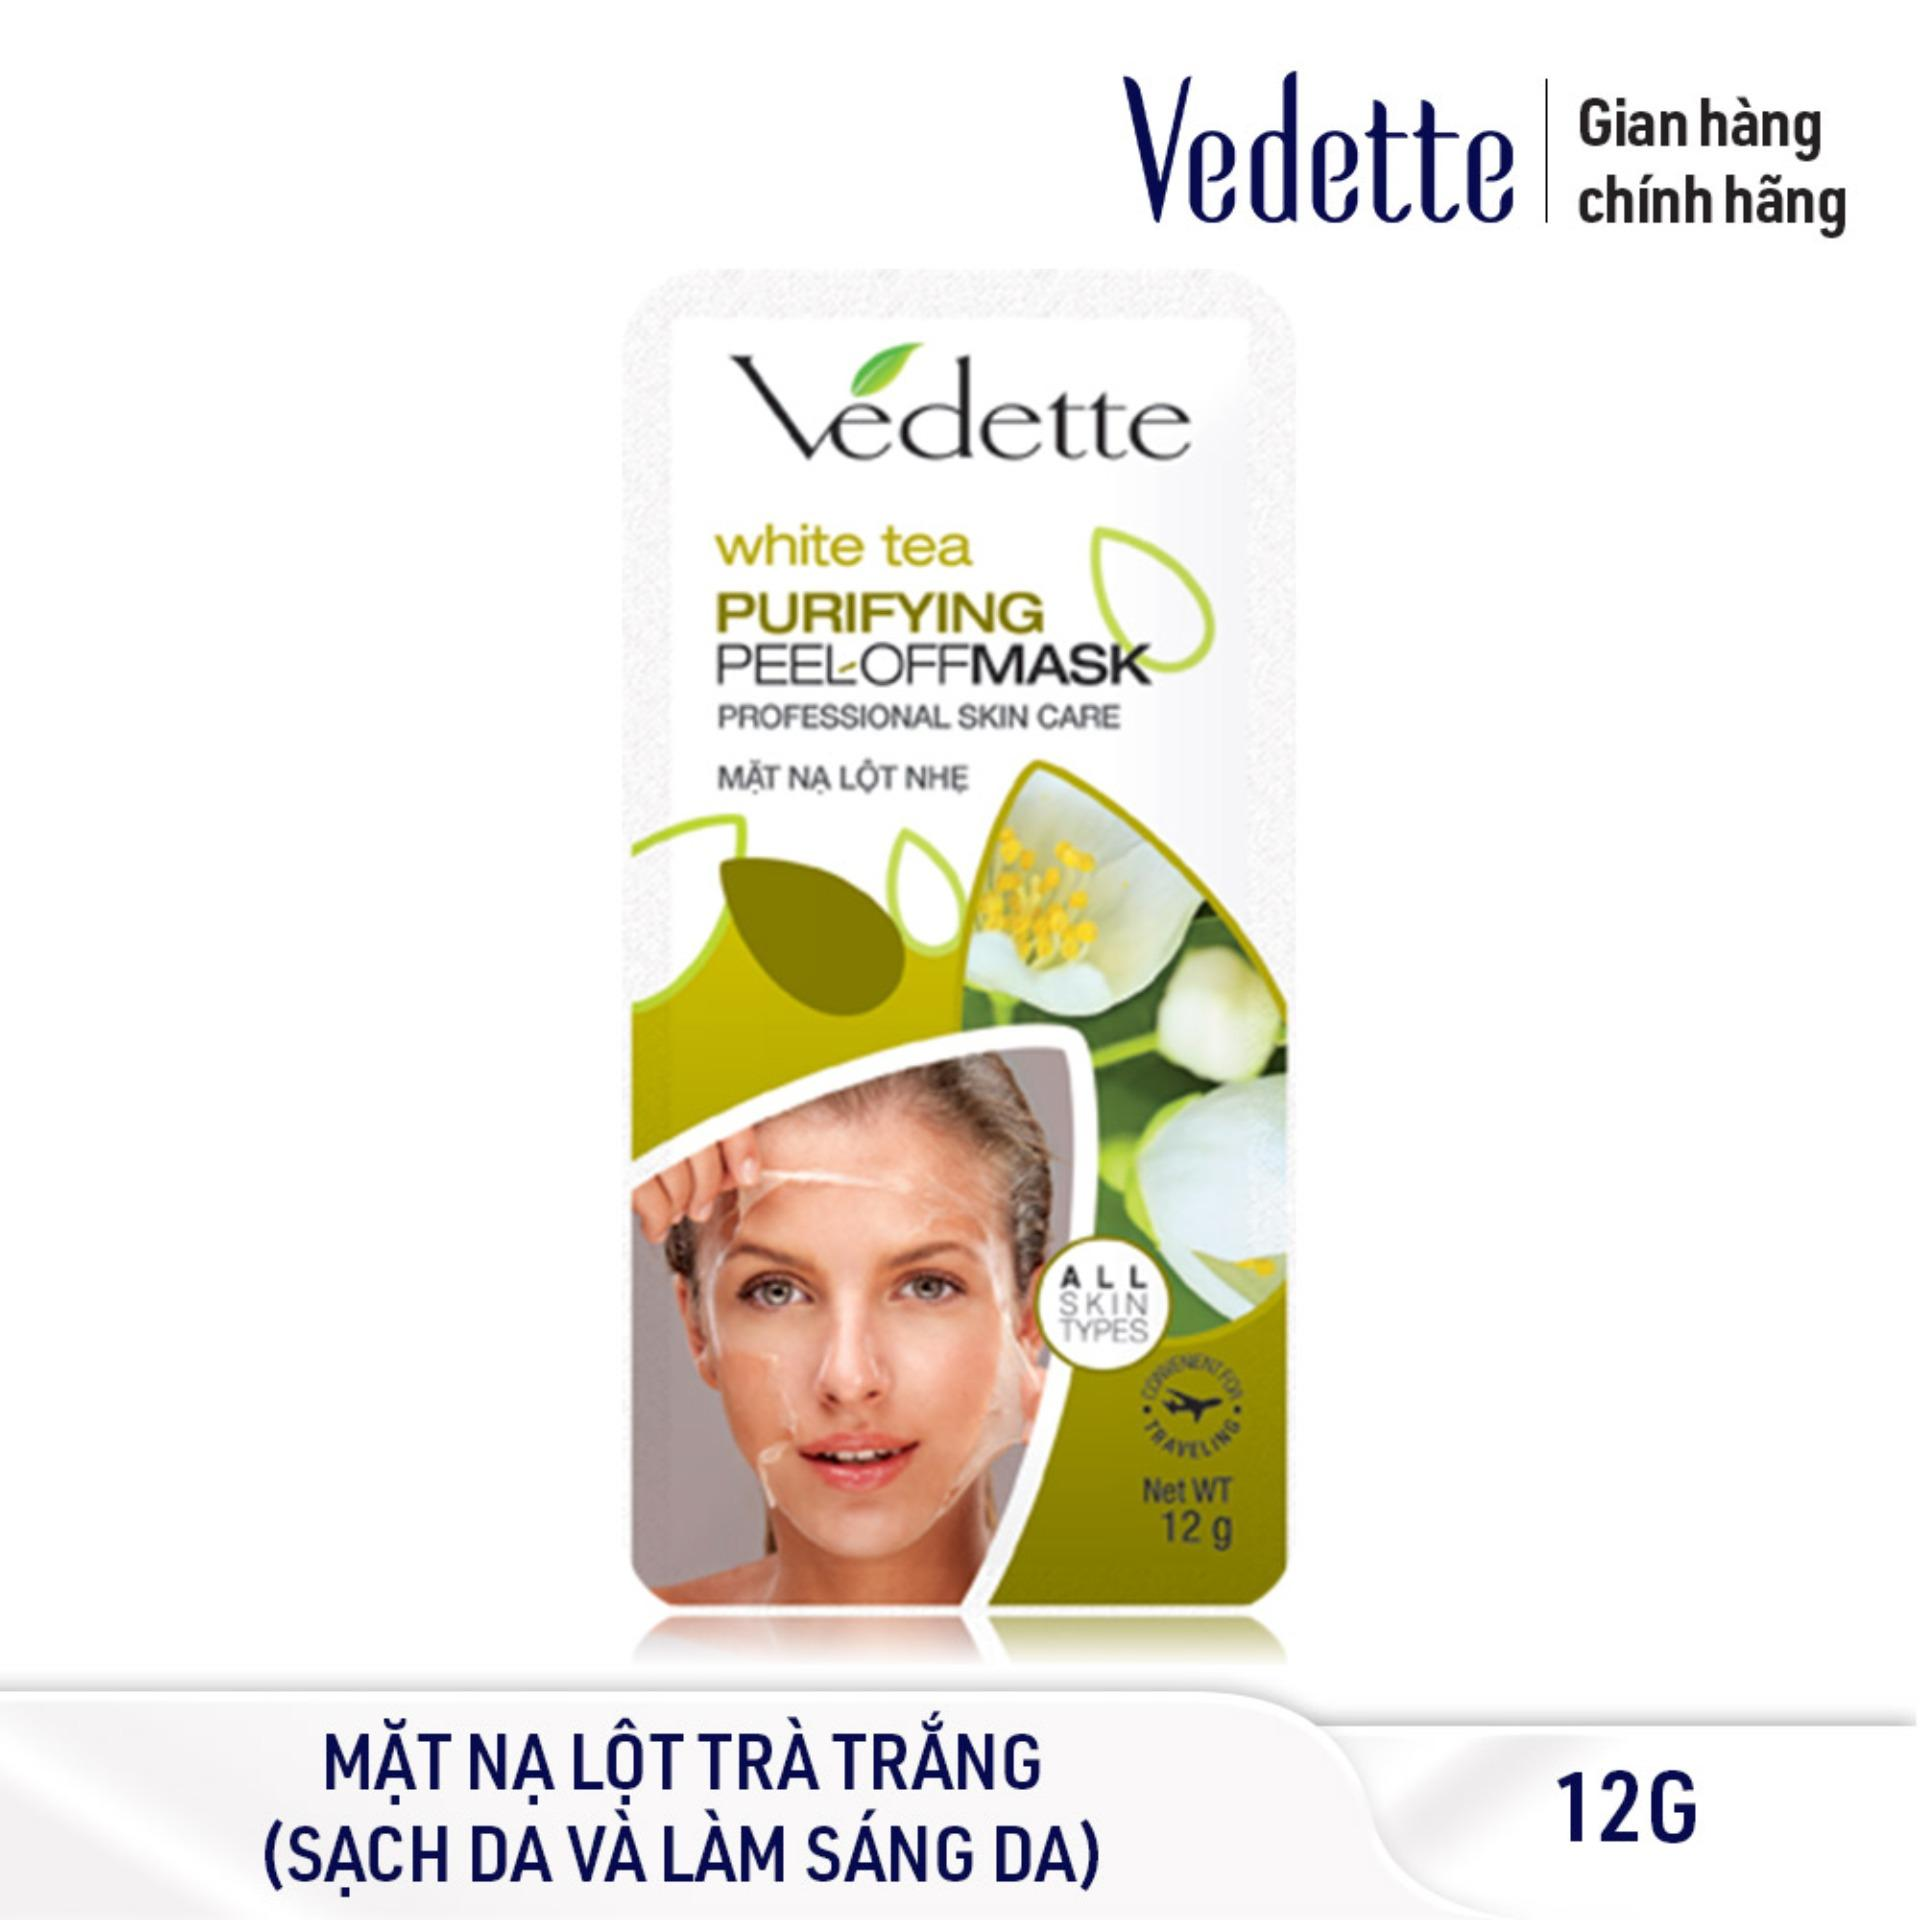 Mặt nạ lột nhẹ trà trắng Vedette Professional Skin Care - Purifying Peel-Off Mask – White tea 12g cao cấp